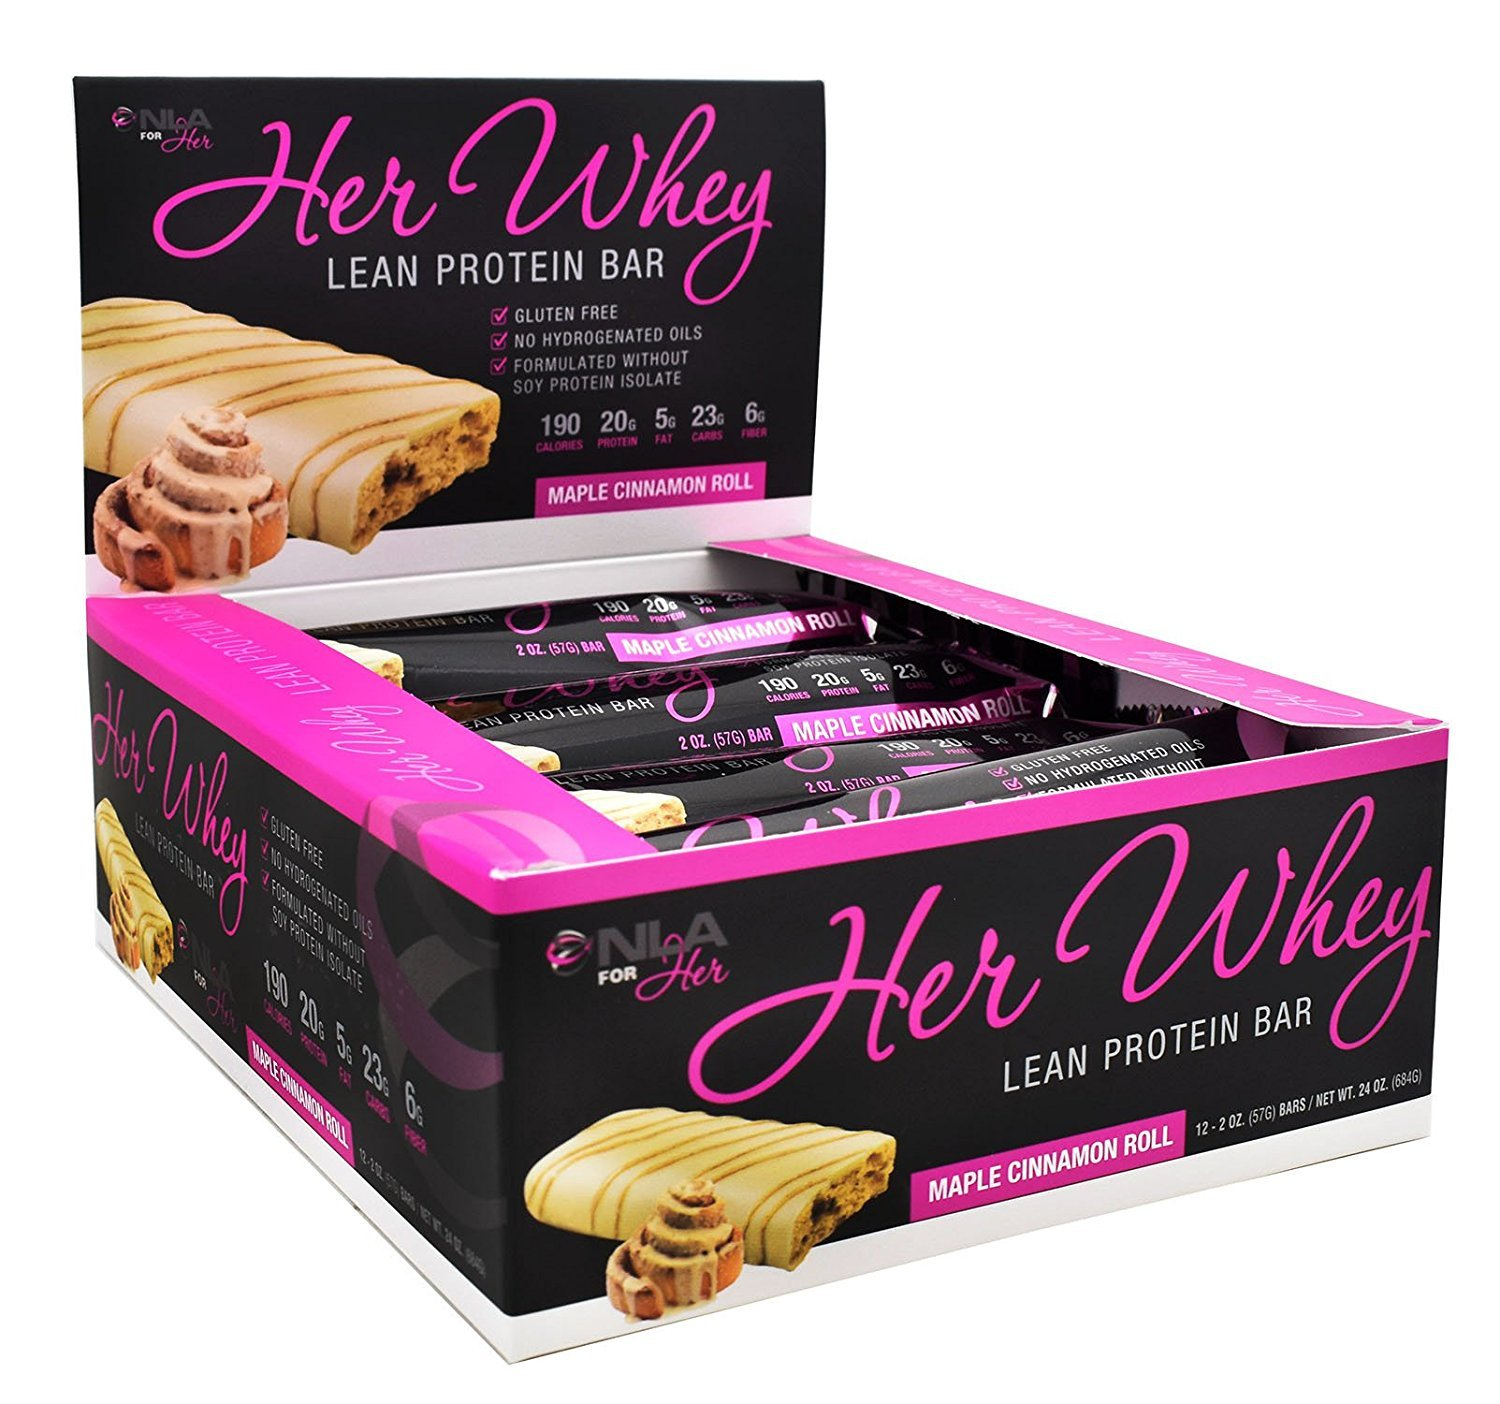 NLA for Her - Her Whey Lean Protein Bar - 20g of Protein, Gluten Free, Low Fat, Low Net Carbohydrates, Great Taste - Maple Cinnamon Roll - 12 Count Box by NLA for Her